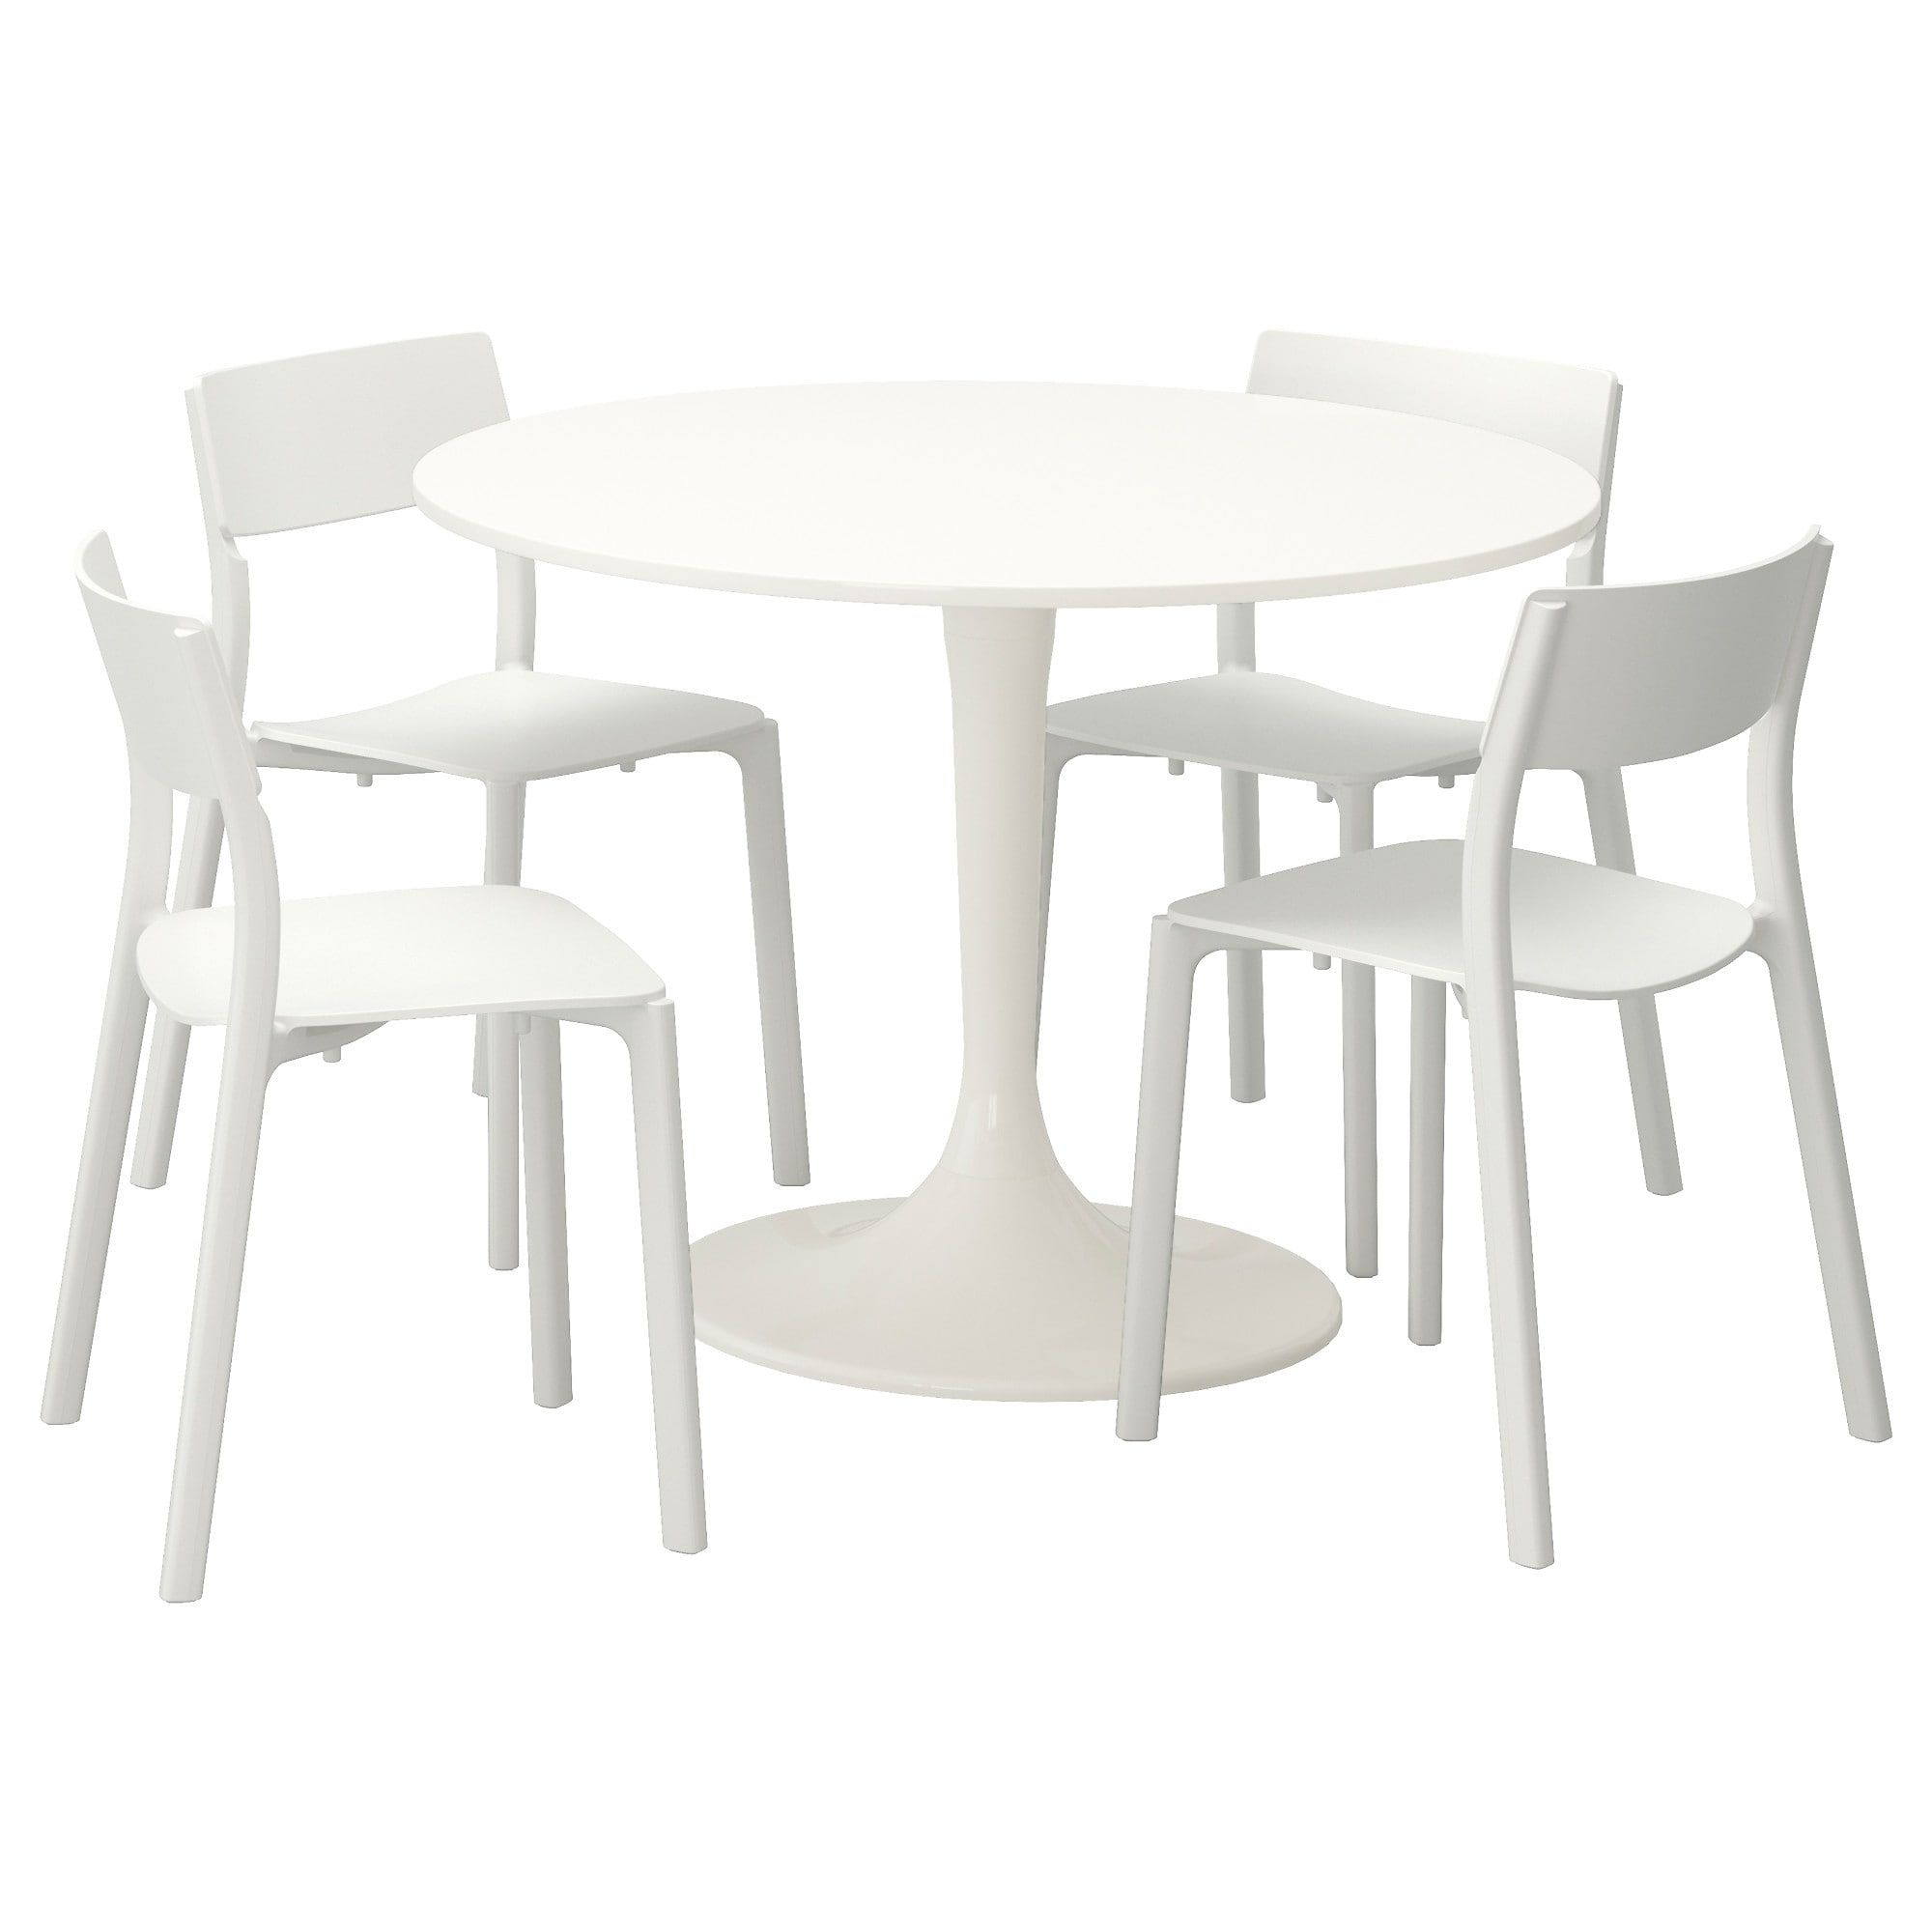 White Dining Table Ikea: IKEA DOCKSTA / JANINGE White, White Table And 4 Chairs